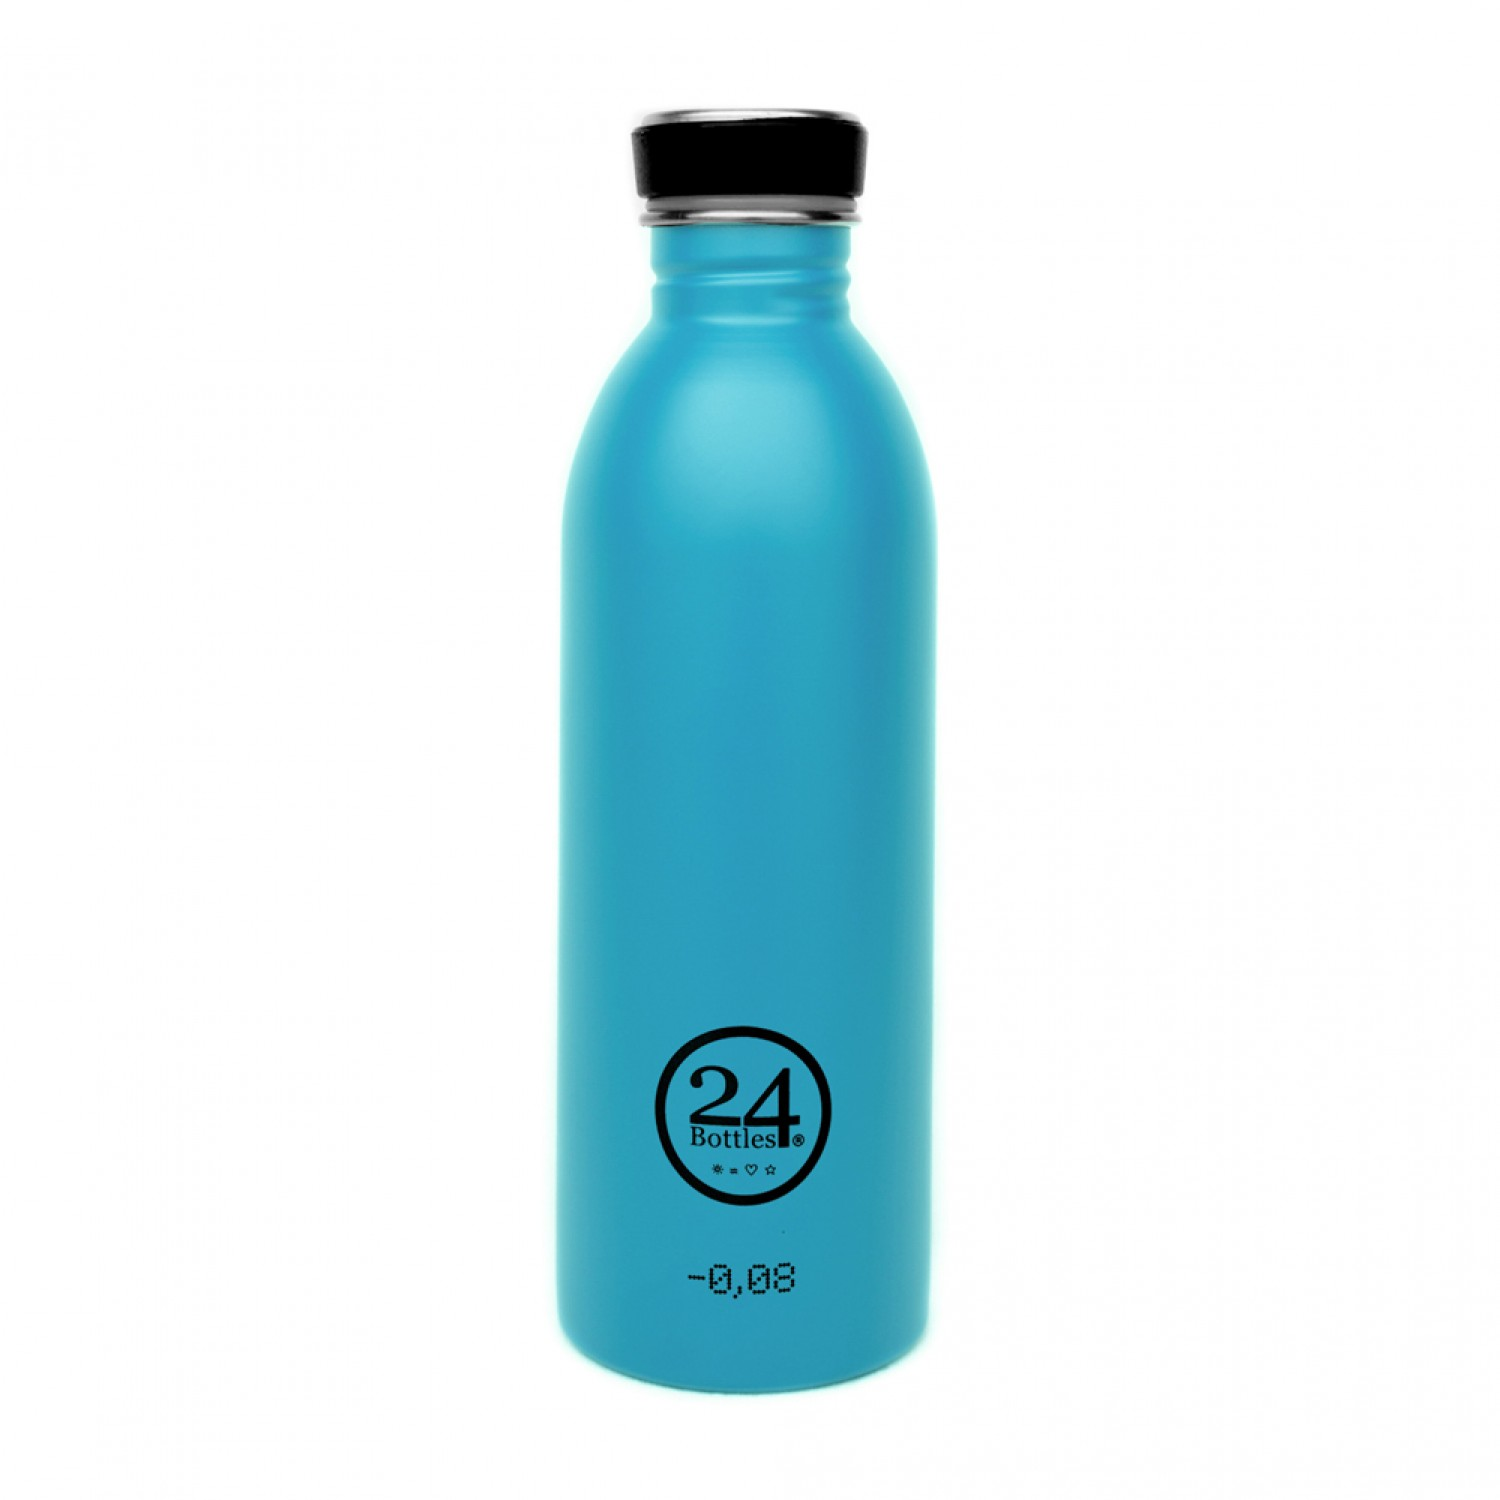 Stainless Steel Drinking Bottle 0.5L lagoon blue | 24Bottles